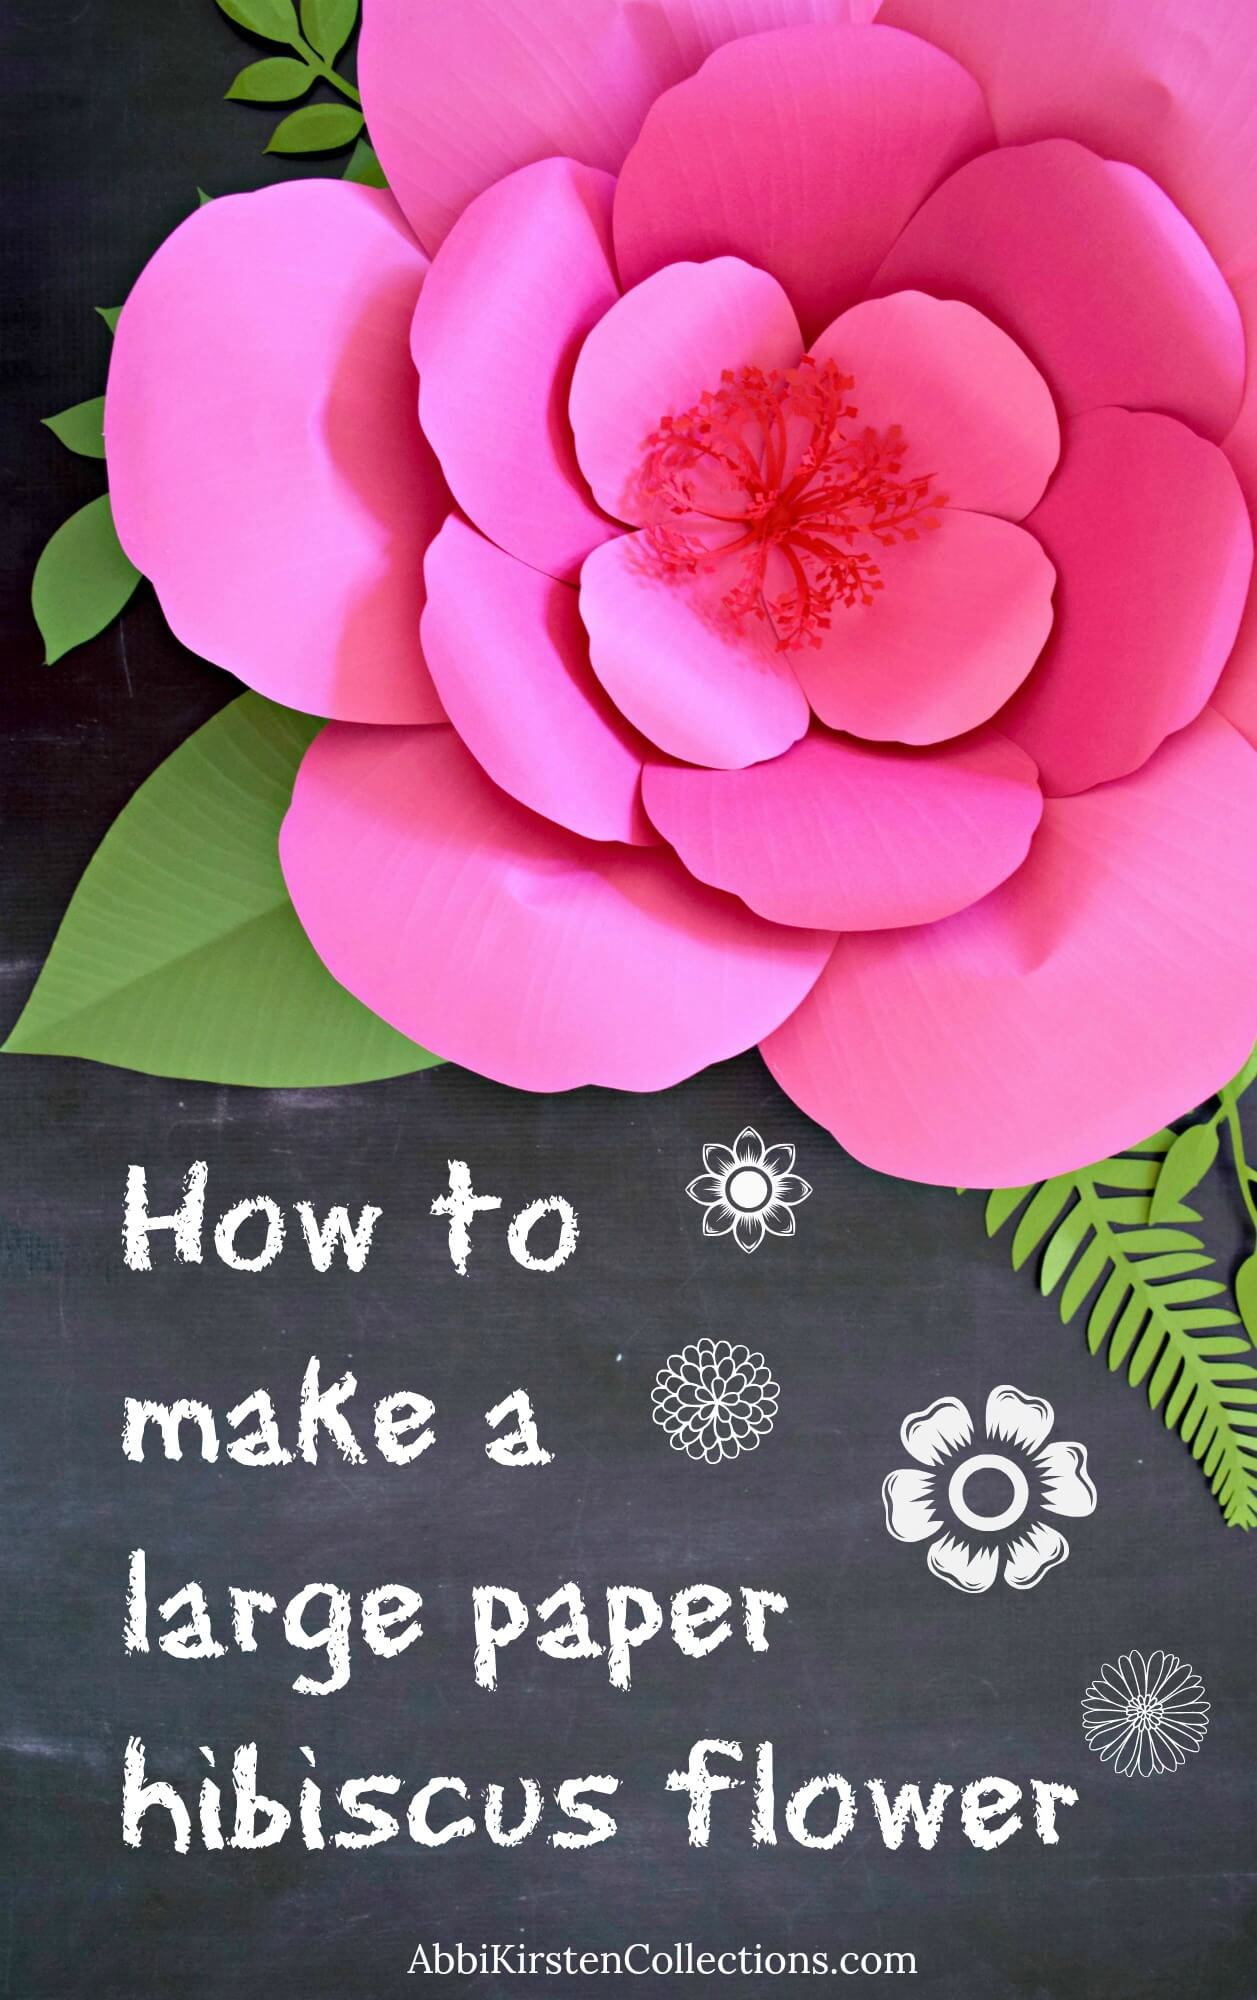 How to make large paper hibiscus flowers